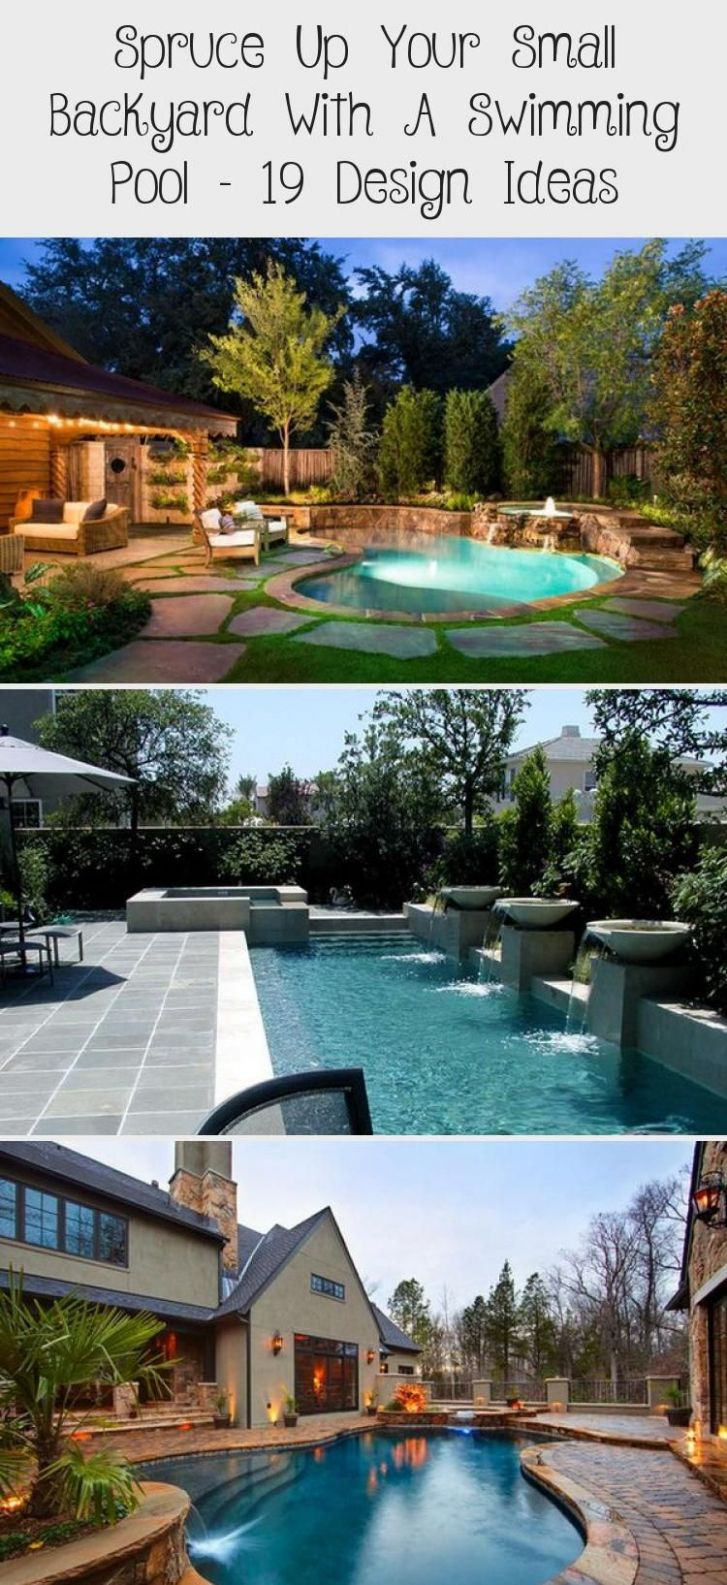 Spruce Up Your Small Backyard With A Swimming Pool – 11 Design ...